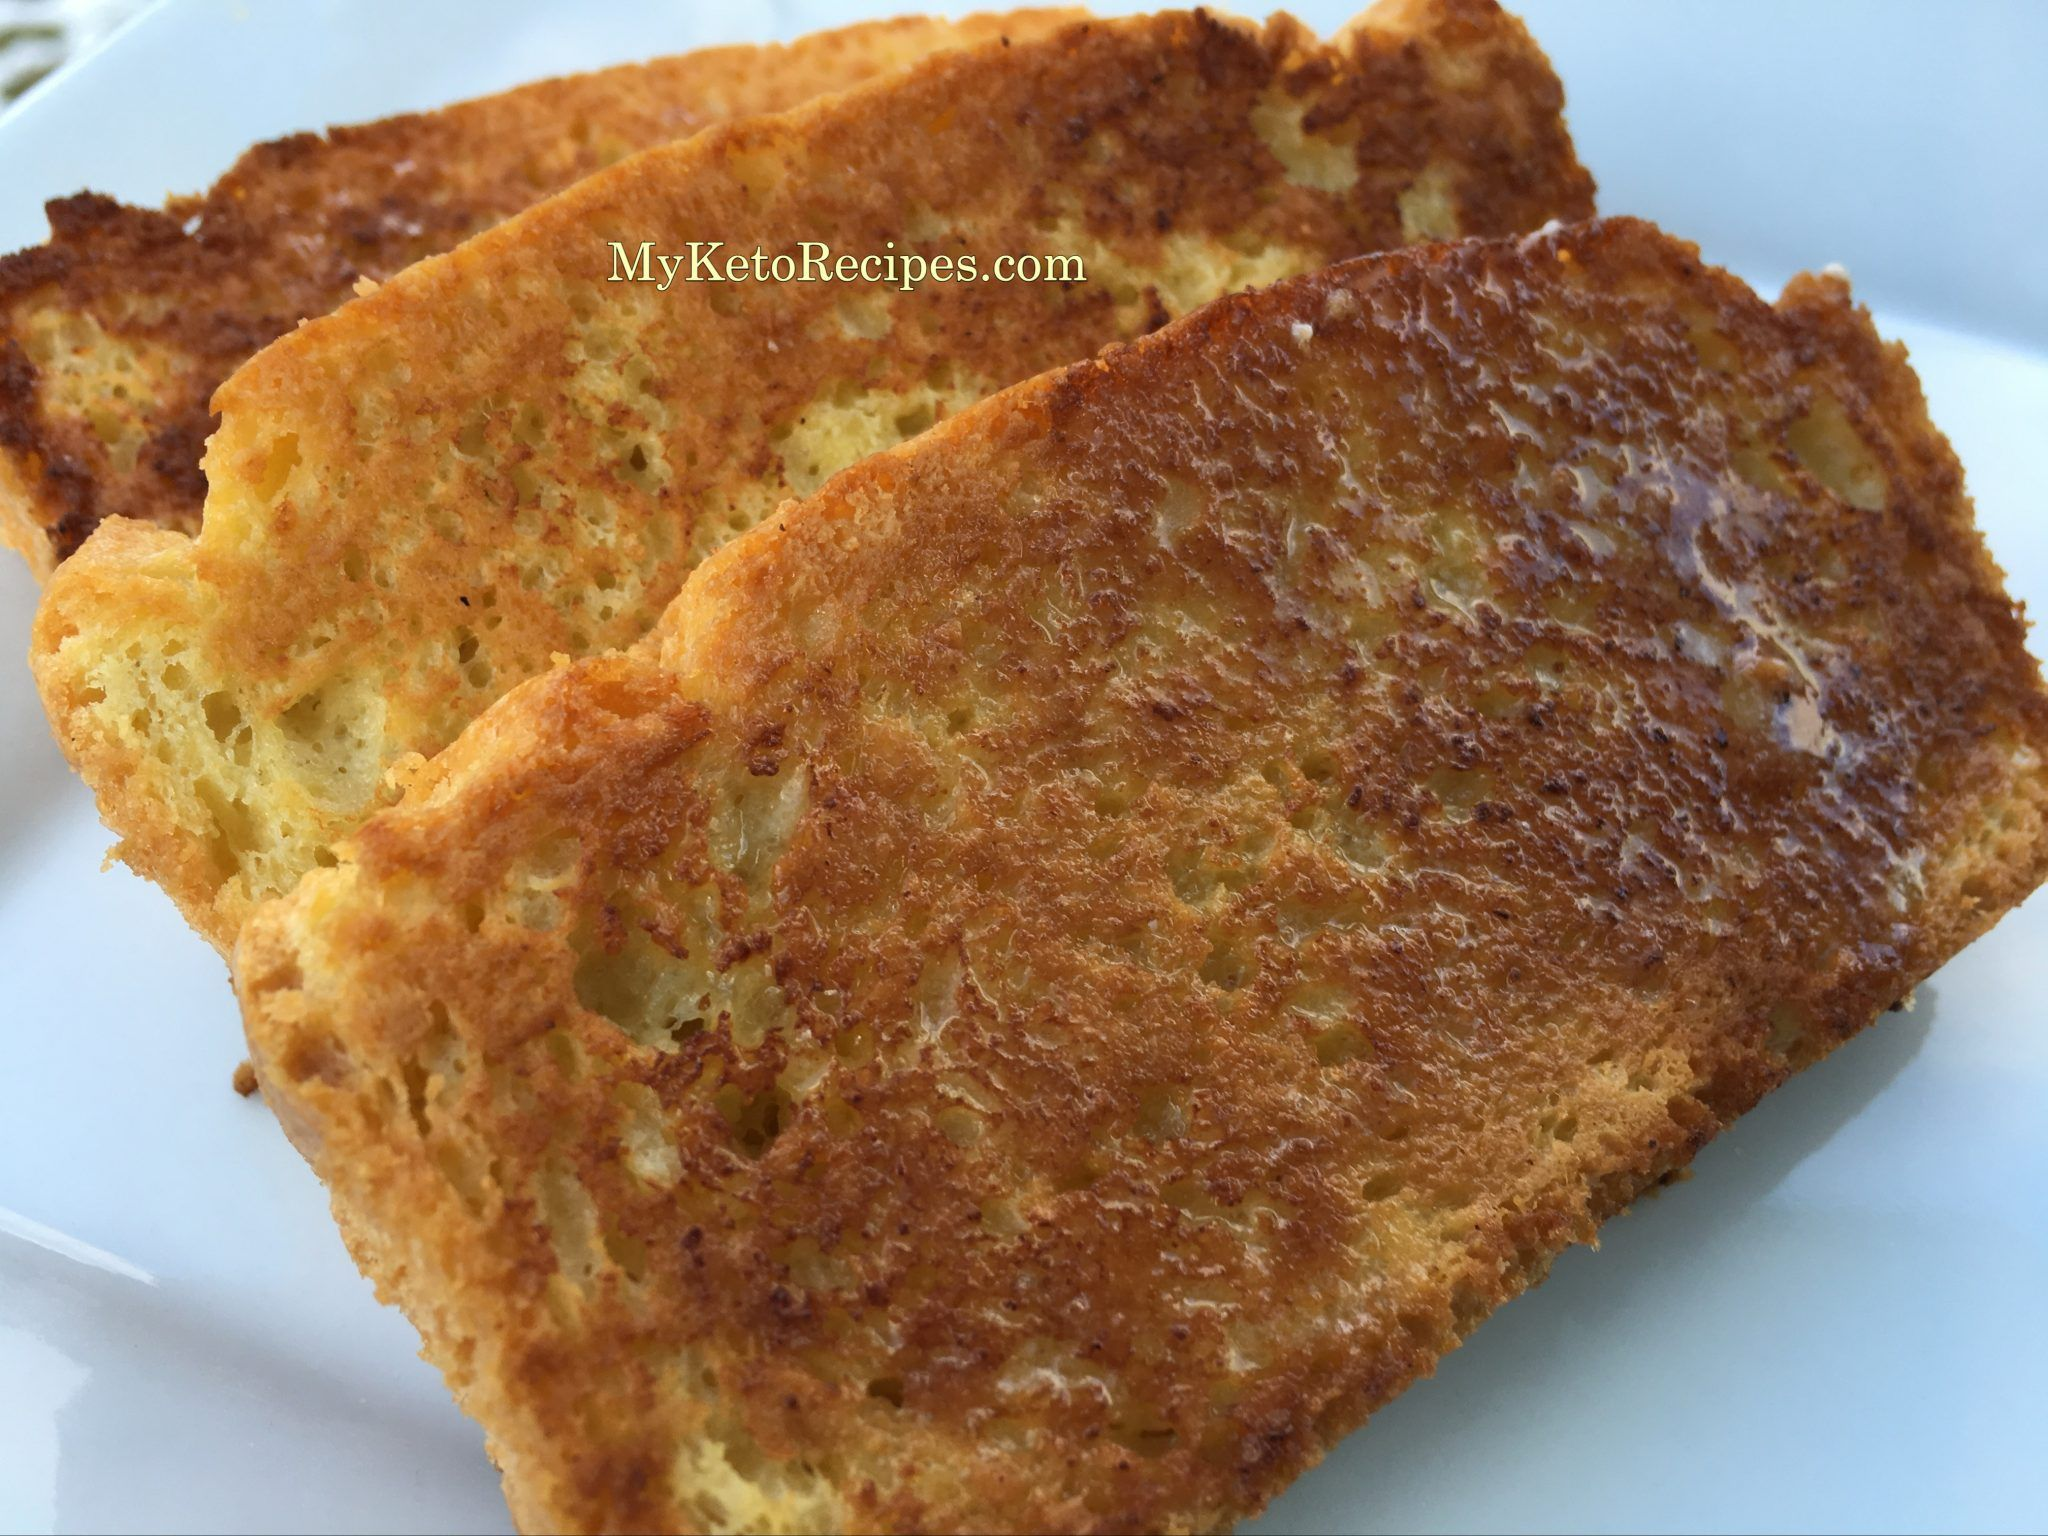 This is the best keto bread recipe for your ketogenic lifestyle 15 soft and tasty ketogenic bread recipes low carb gluten free dairy free forumfinder Choice Image